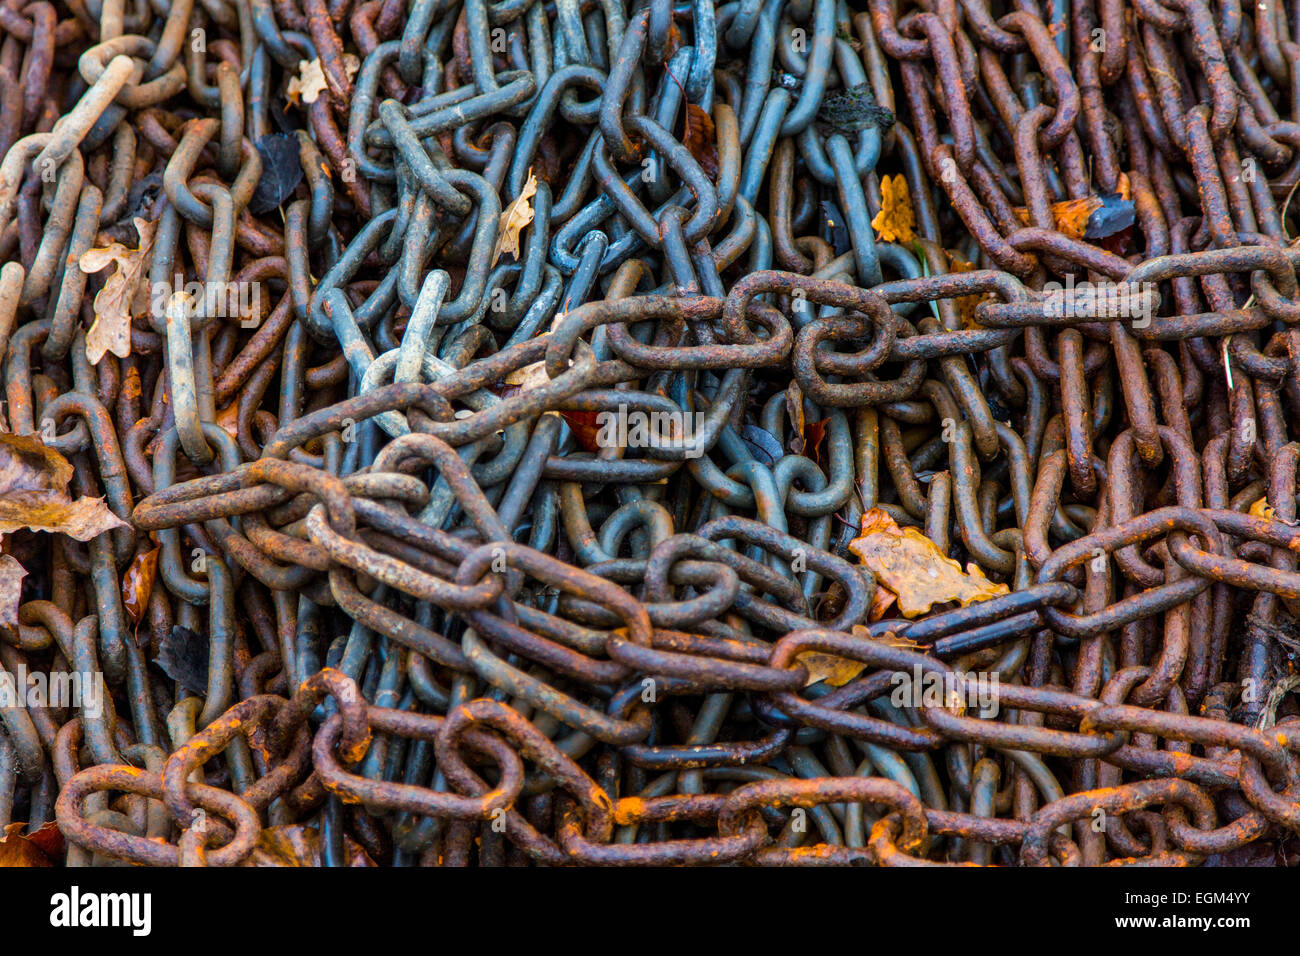 Rusty metal chains in water - Stock Image